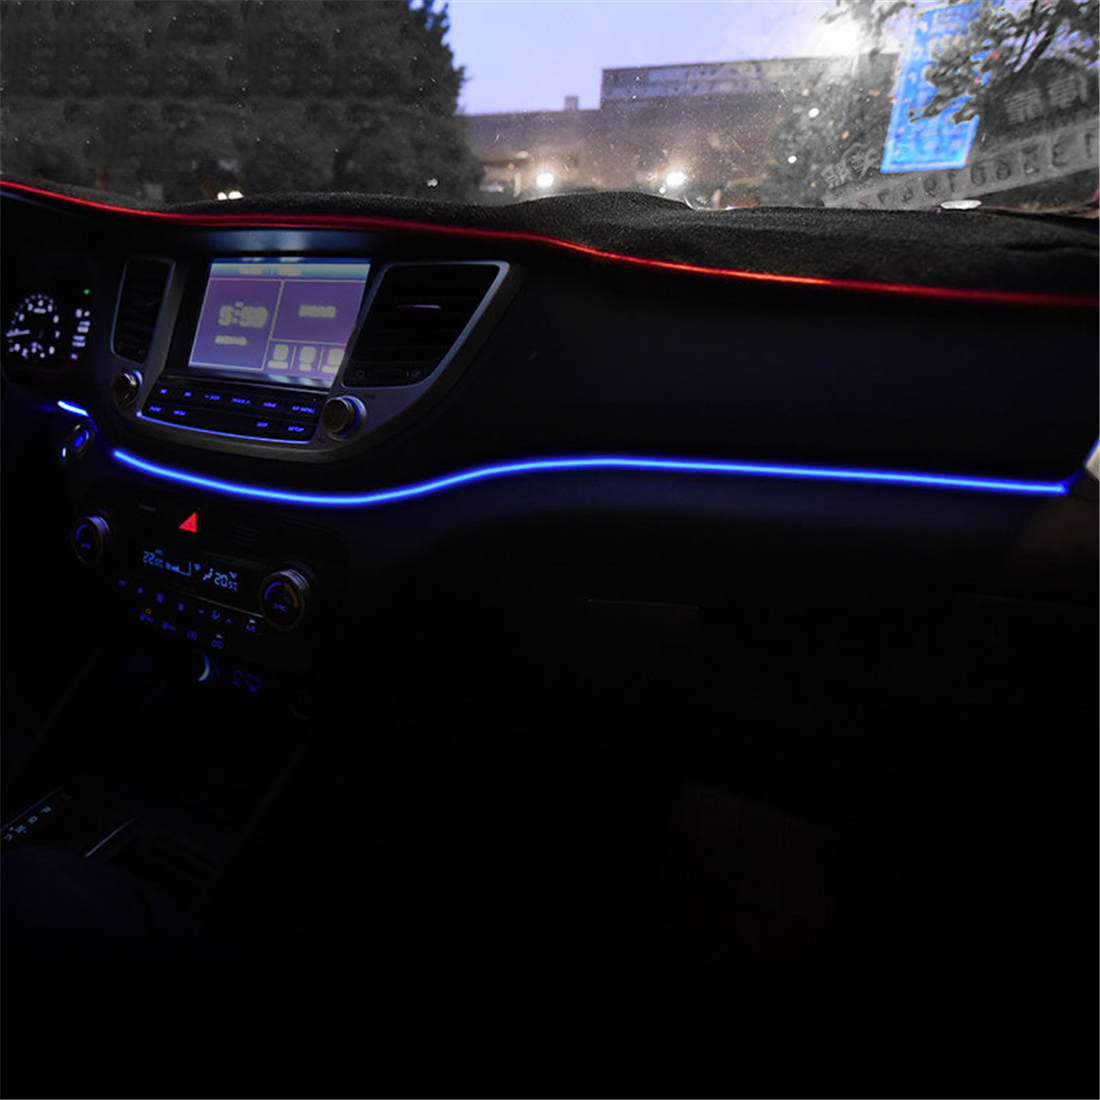 Instrument Panel Trim Atmosphere Light For Hyundai Tucson 2015 2016 Interior LED Blue Dashboard Frame Light